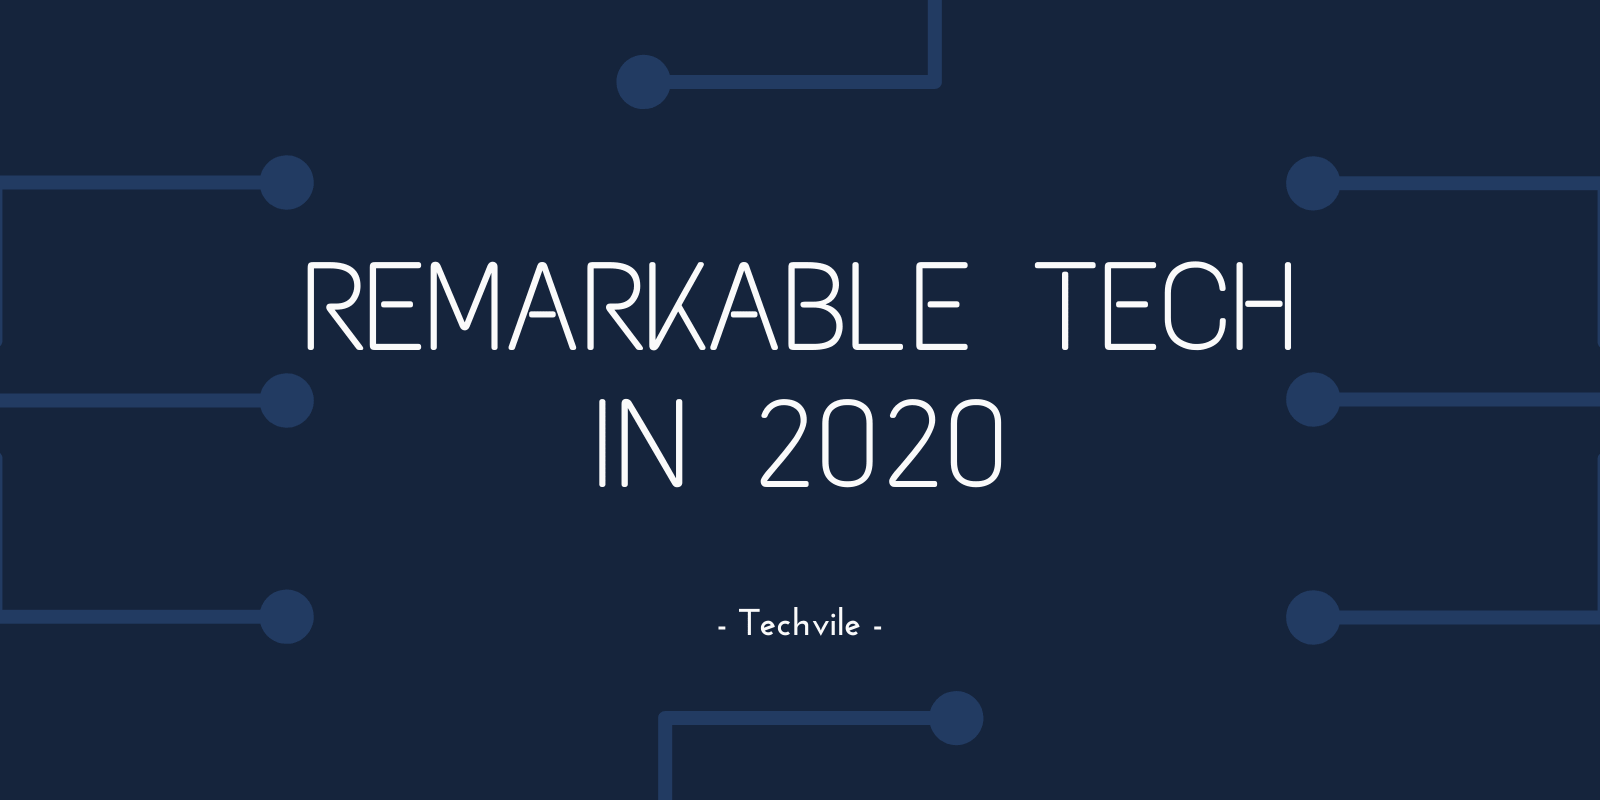 10 Technologies that Make 2020 a Remarkable Year